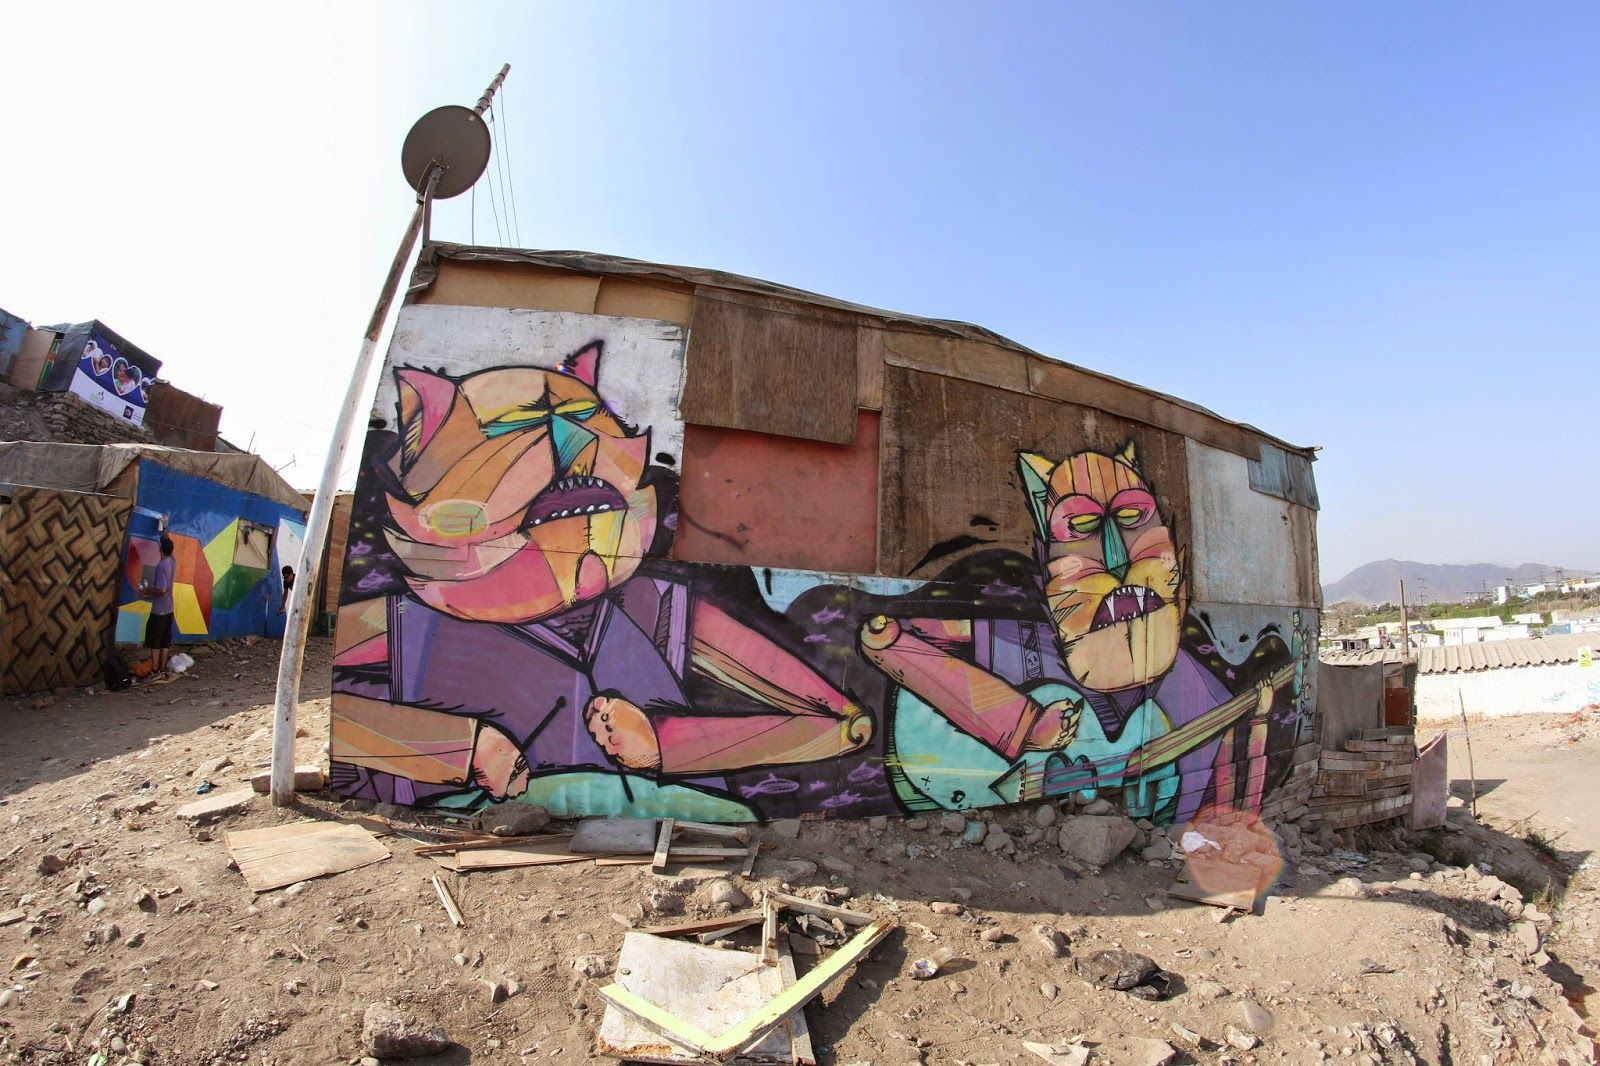 Seimiek is currently cruising through the city of Lima in Peru where he visited the favela of Cantagallo to work on a new piece.